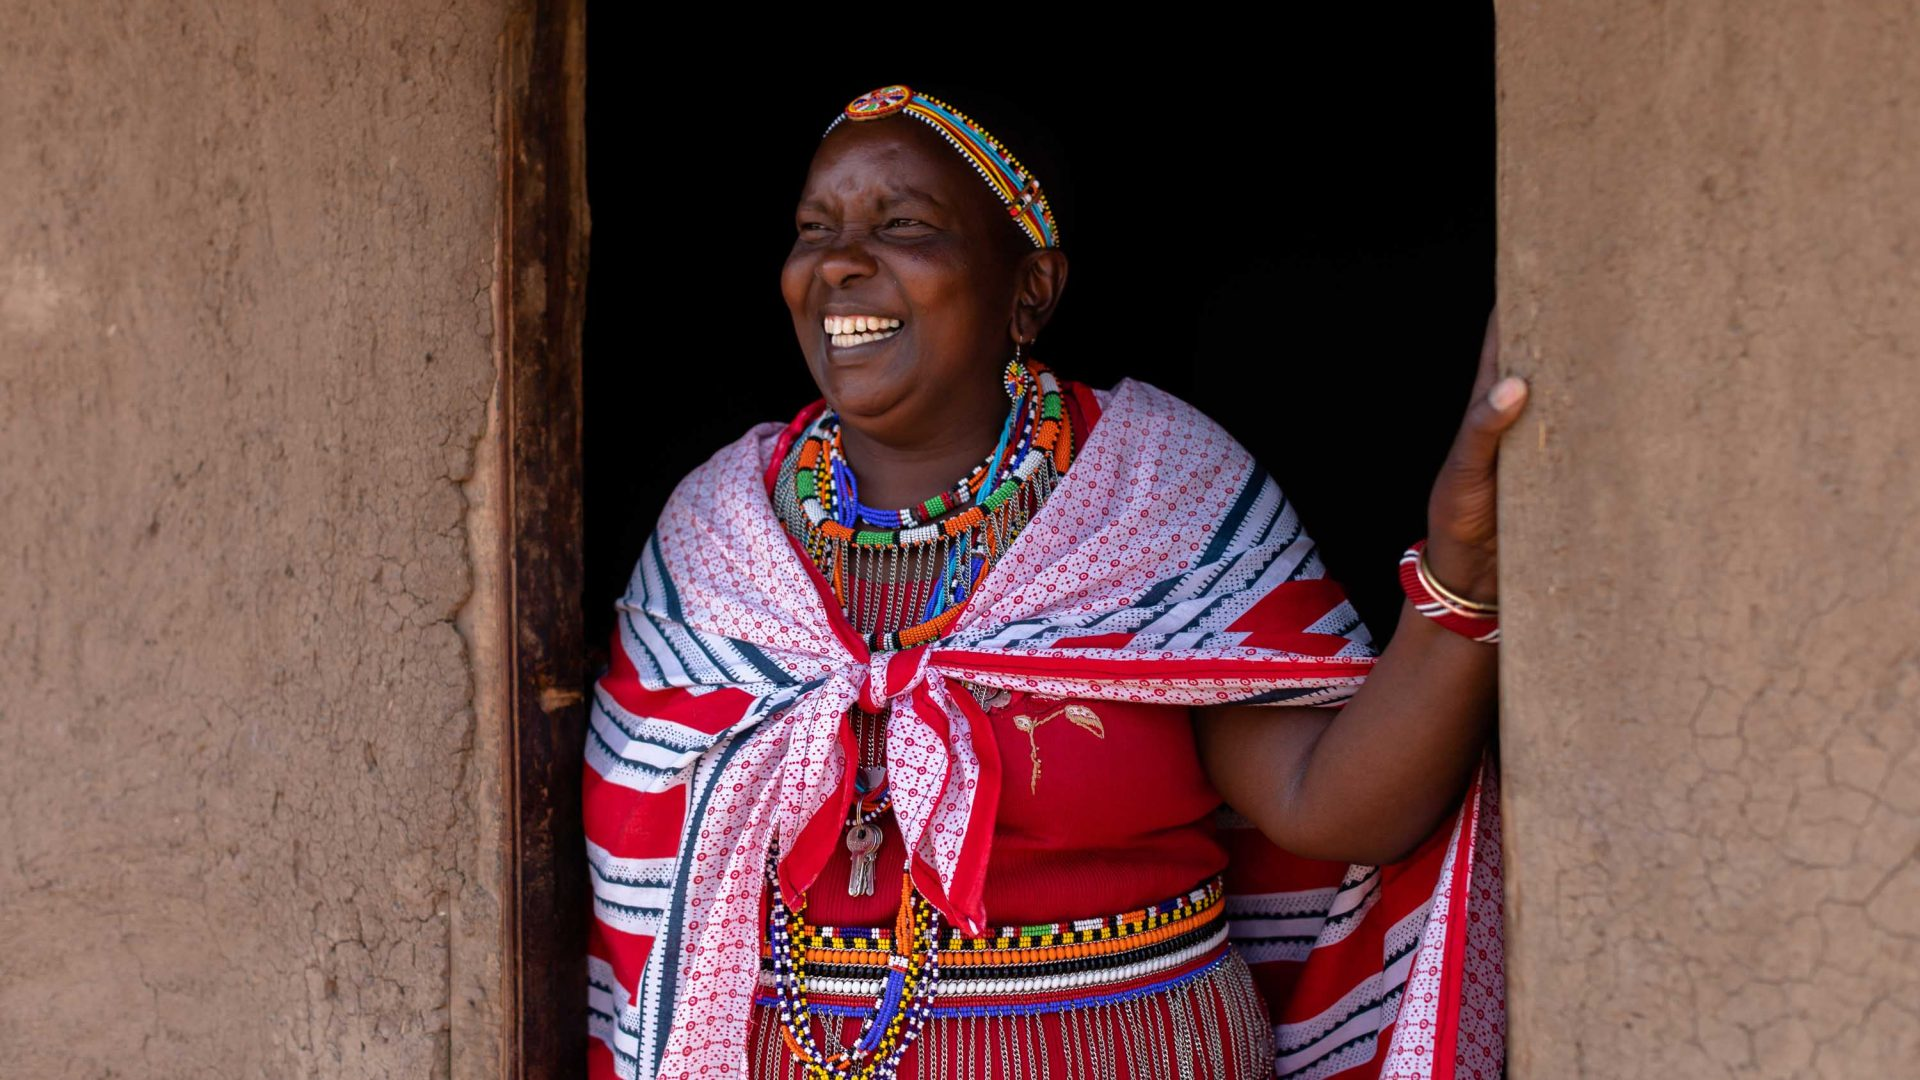 Hellen in the Maasai Tepesua village she founded.